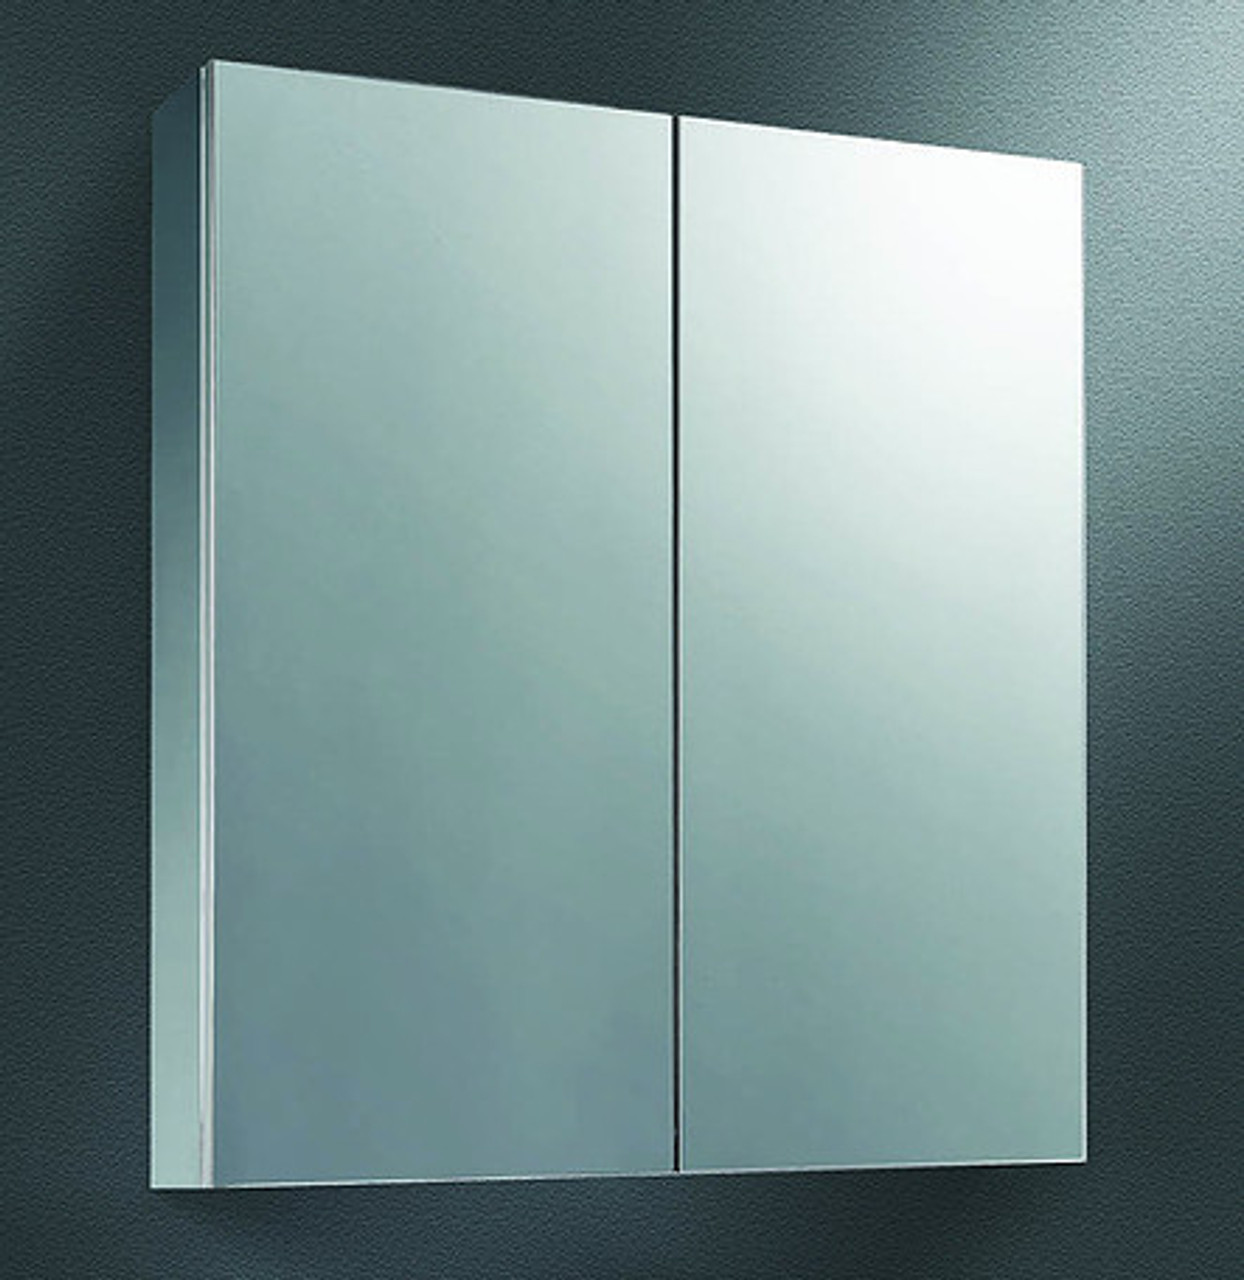 Ketcham Dual Door Medicine Cabinets Stainless Steel Series - Dual Door